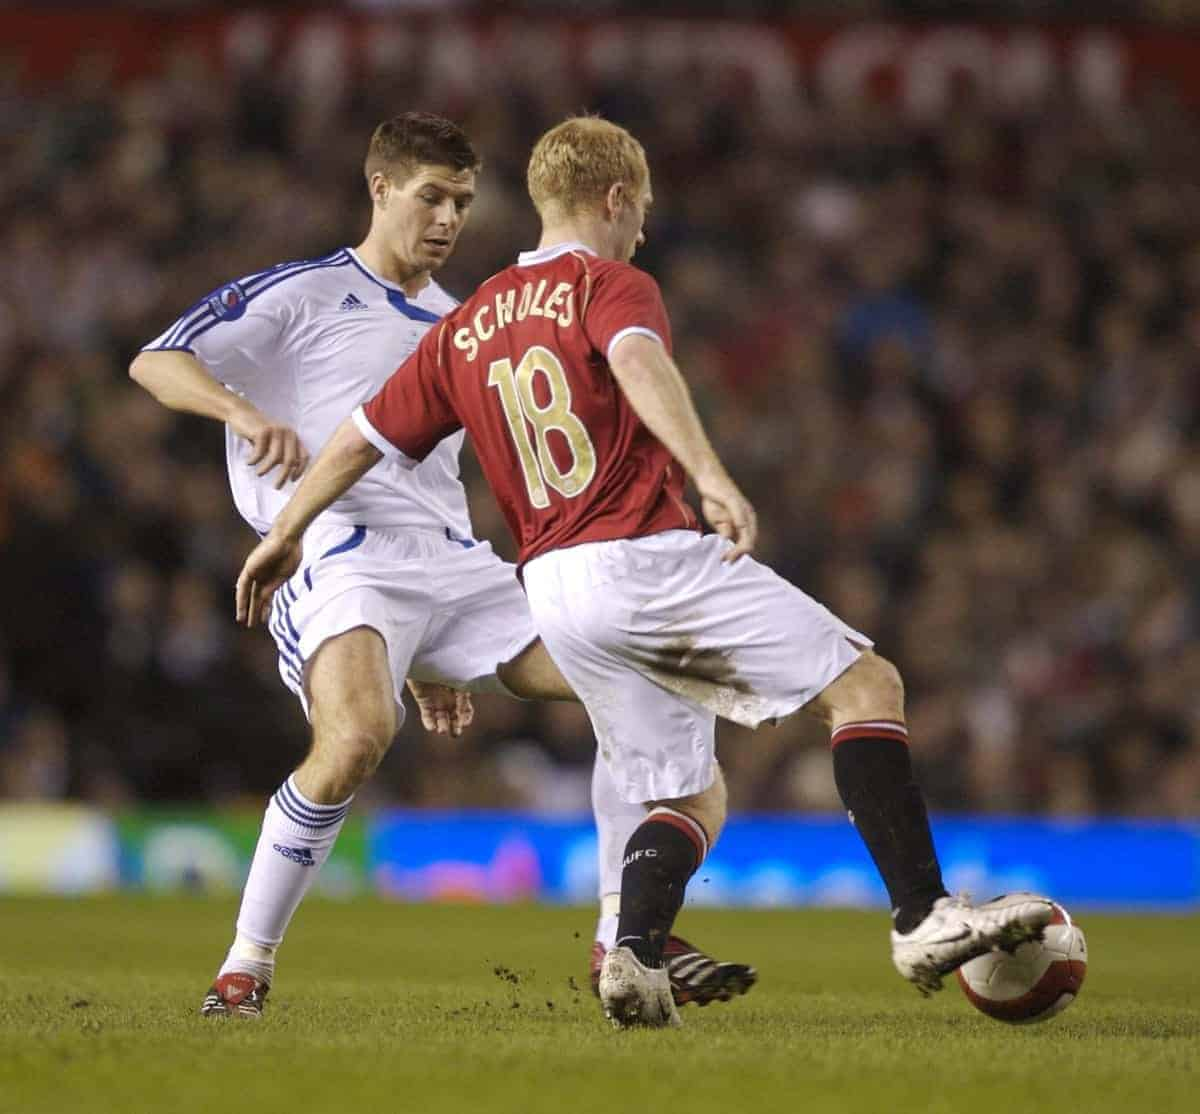 Manchester, England - Tuesday, March 13, 2007: Manchester United's Paul Scholes and Europe XI's Steven Gerrard during the UEFA Celebration Match at Old Trafford. (Pic by David Rawcliffe/Propaganda)